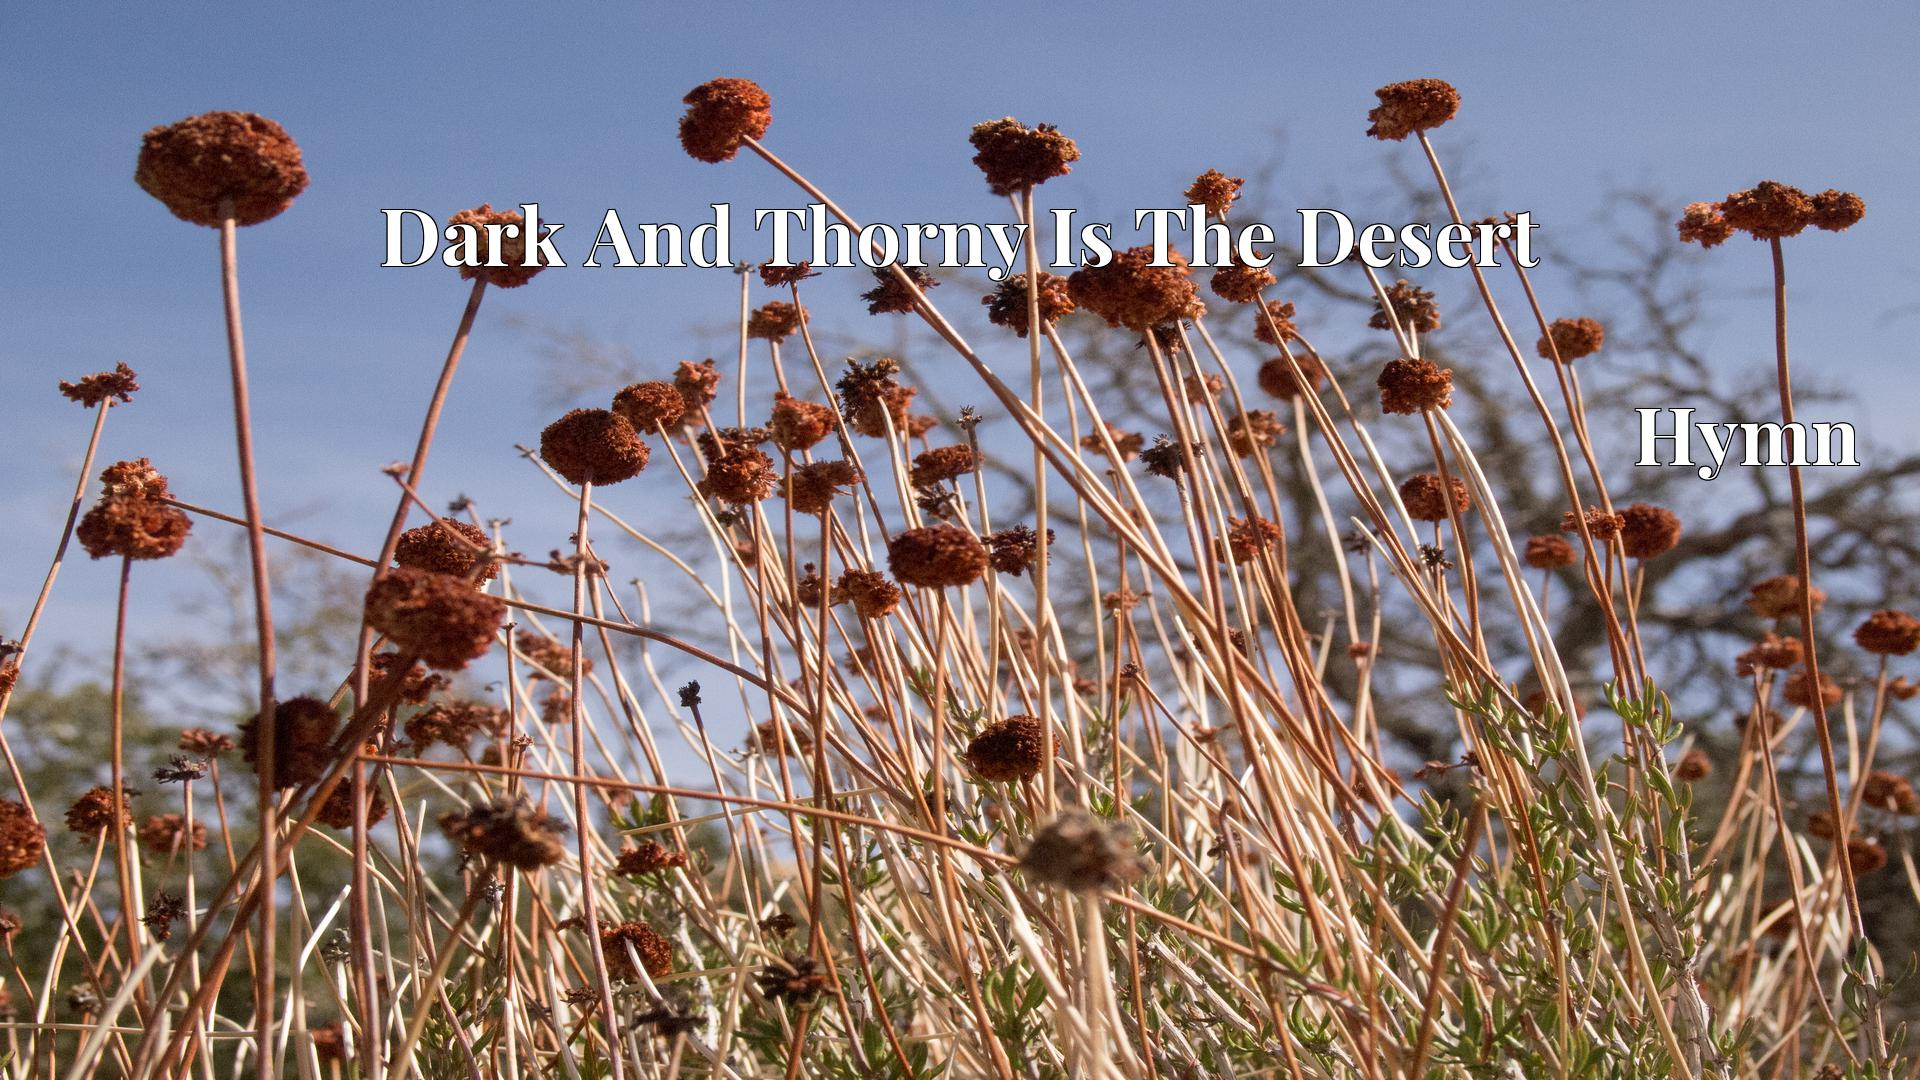 Dark And Thorny Is The Desert - Hymn